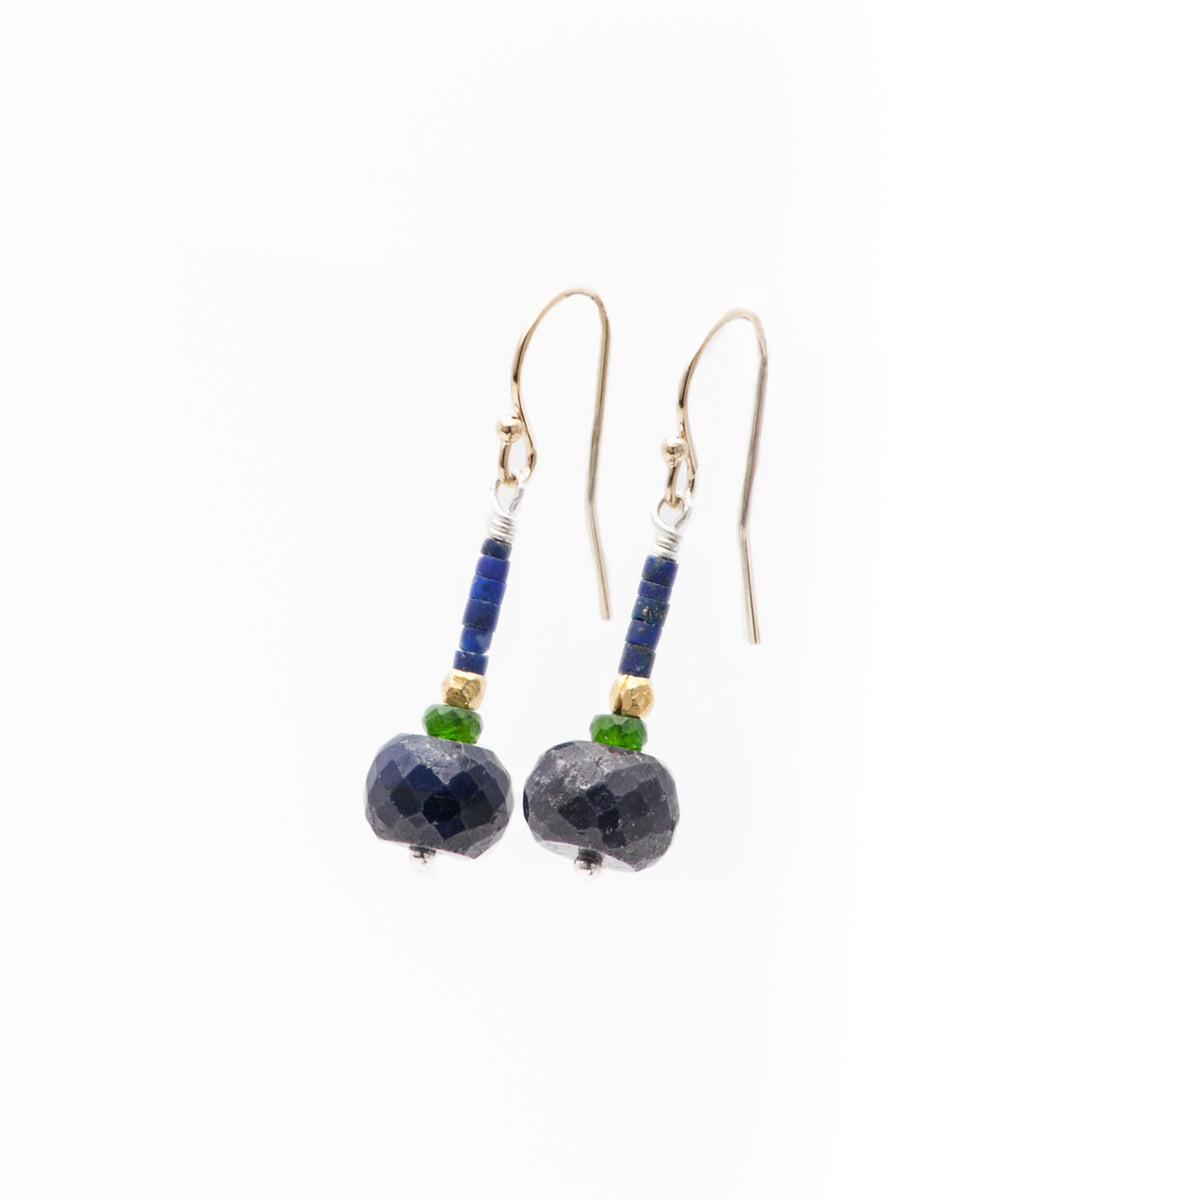 Iconic Earrings of Faceted Blue Sapphire, Chrome Diposite, Matte Lapis, and Gold